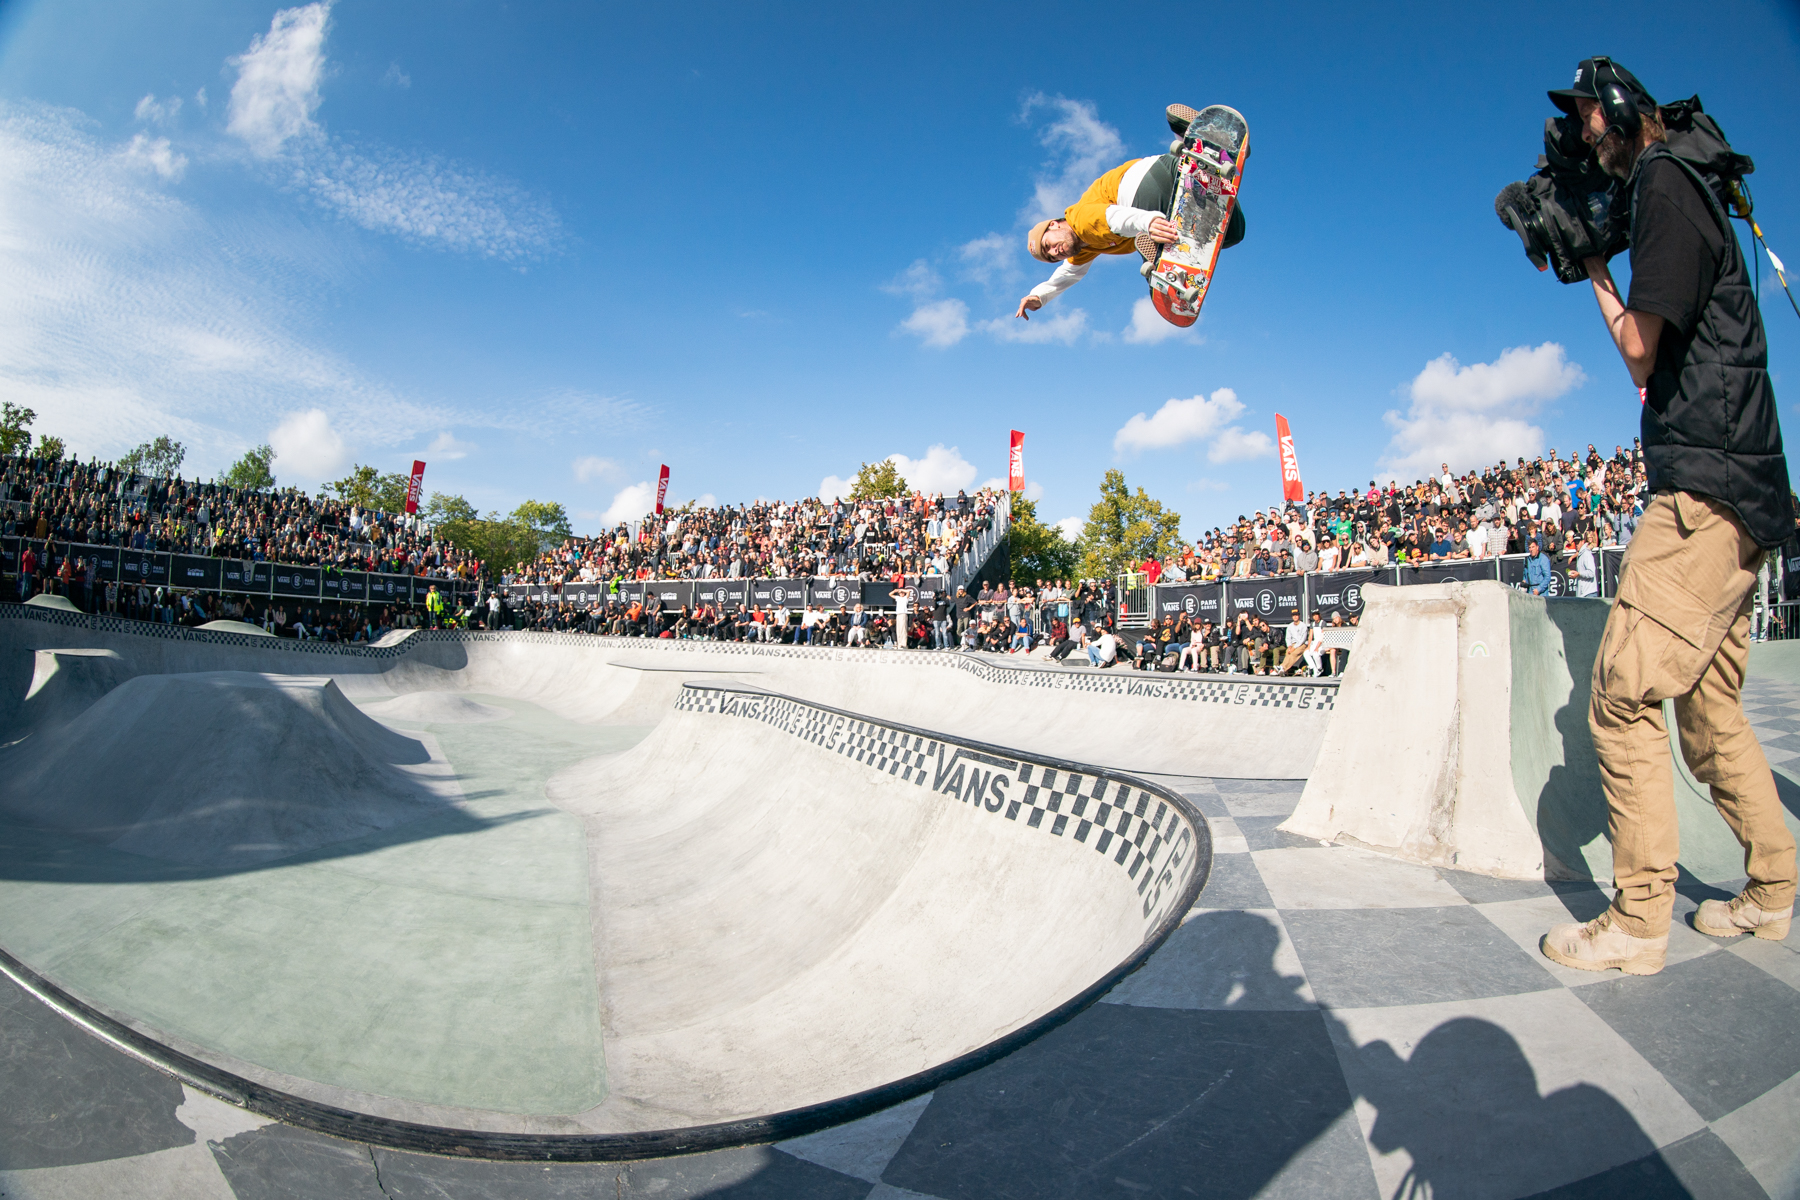 VANS PARK SERIES ANNOUNCES 2019 PRO TOUR SEASON